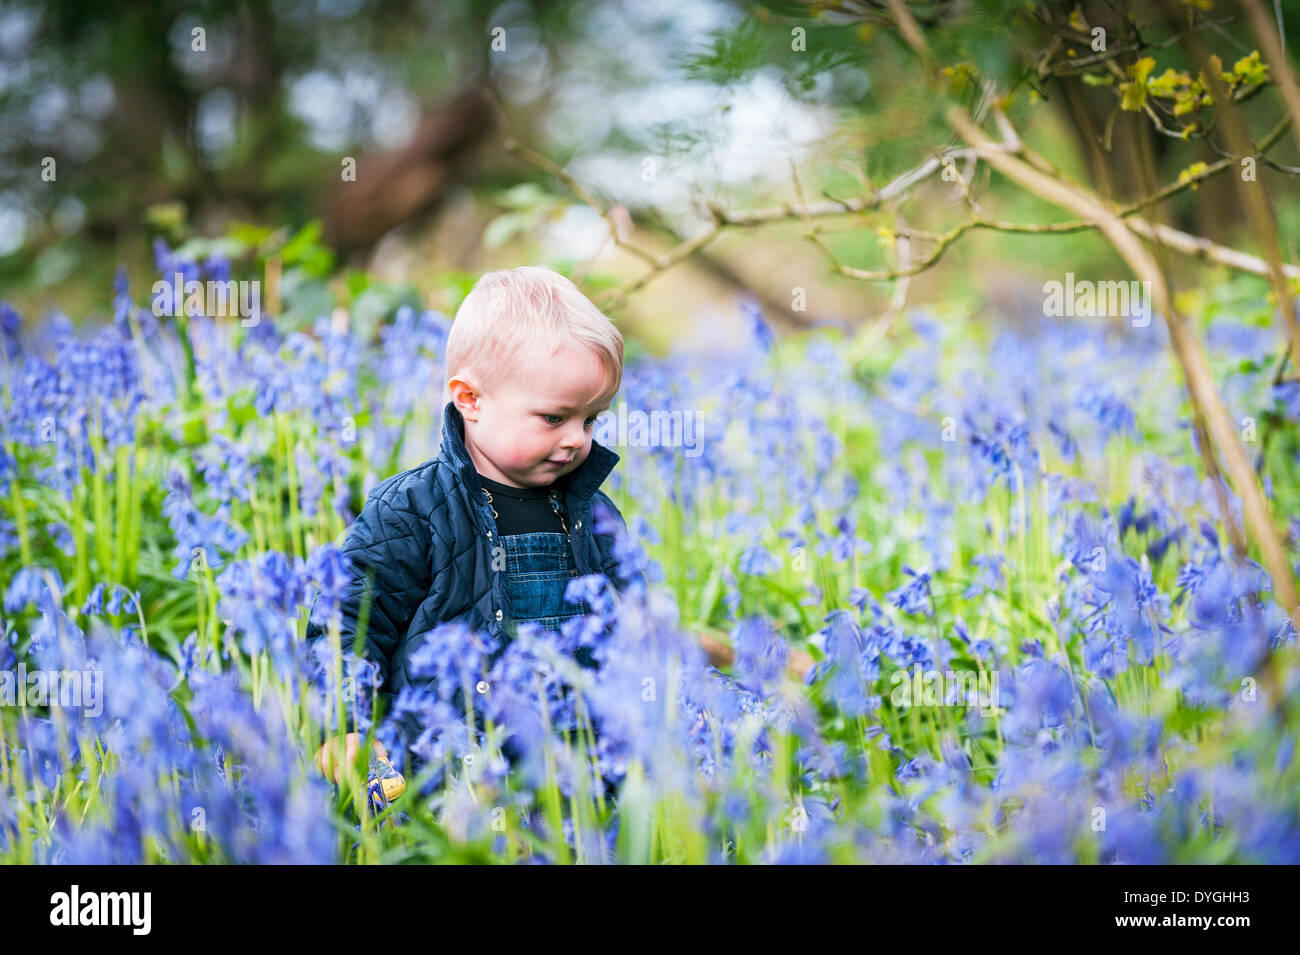 Coombe Wood, Essex, UK. April 17th 2014.   Young Chester Scammell-Webb takes the opportunity to sit amongst a spectacular display of bluebells.  It is the first time he has ever seen so many bluebells.  Photographer:  Gordon Scammell/Alamy Live News. - Stock Image